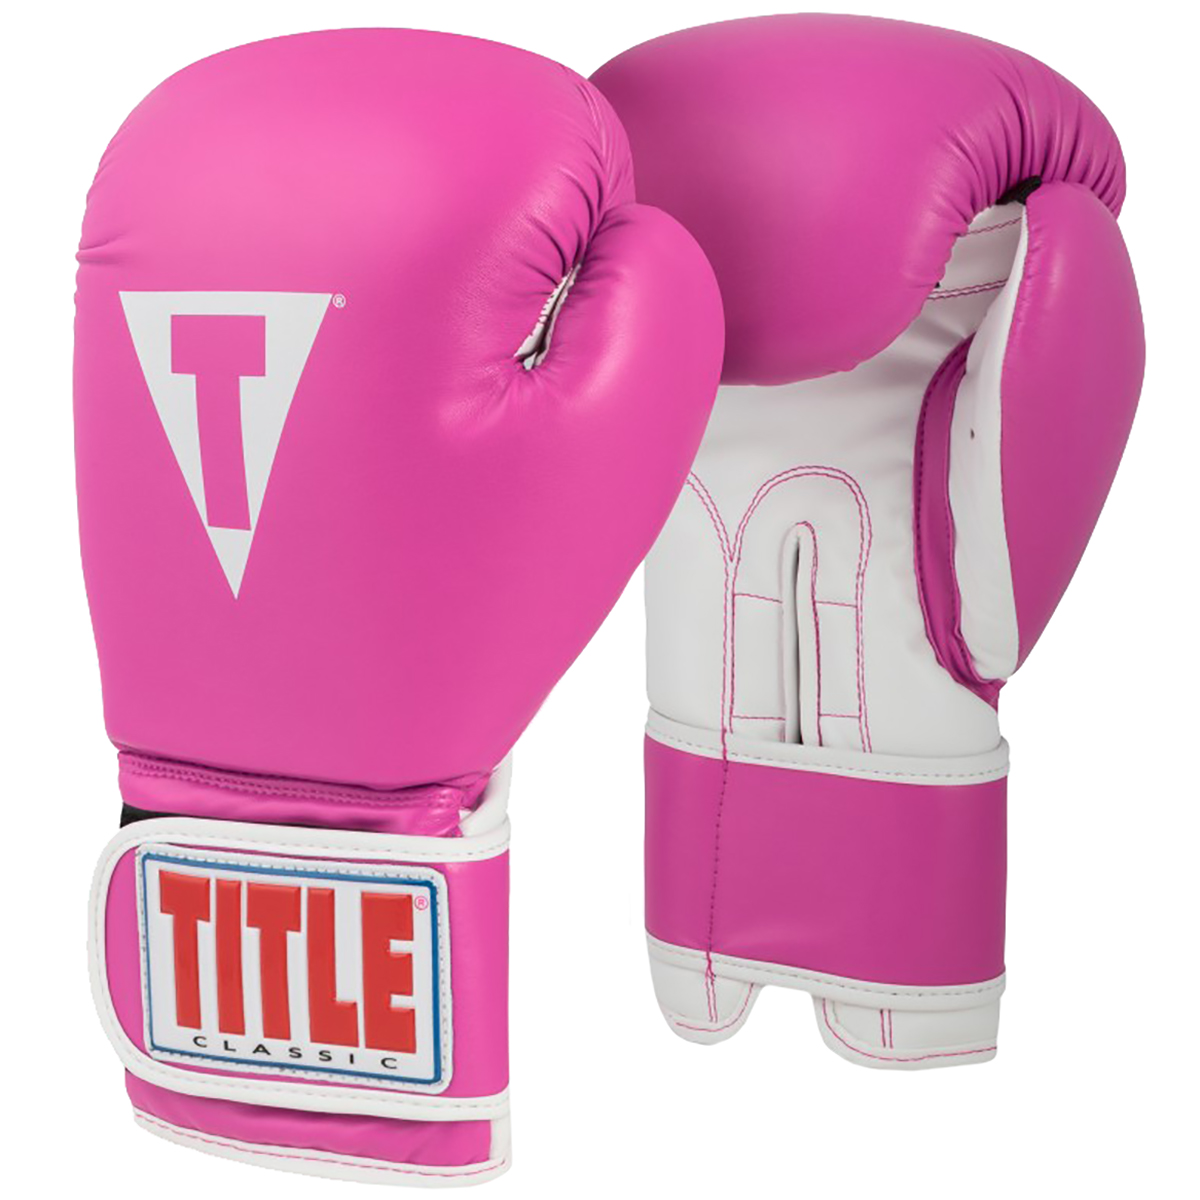 Title Boxing Classic Pro Style Hook and Loop Training Gloves - Hot Pink/White